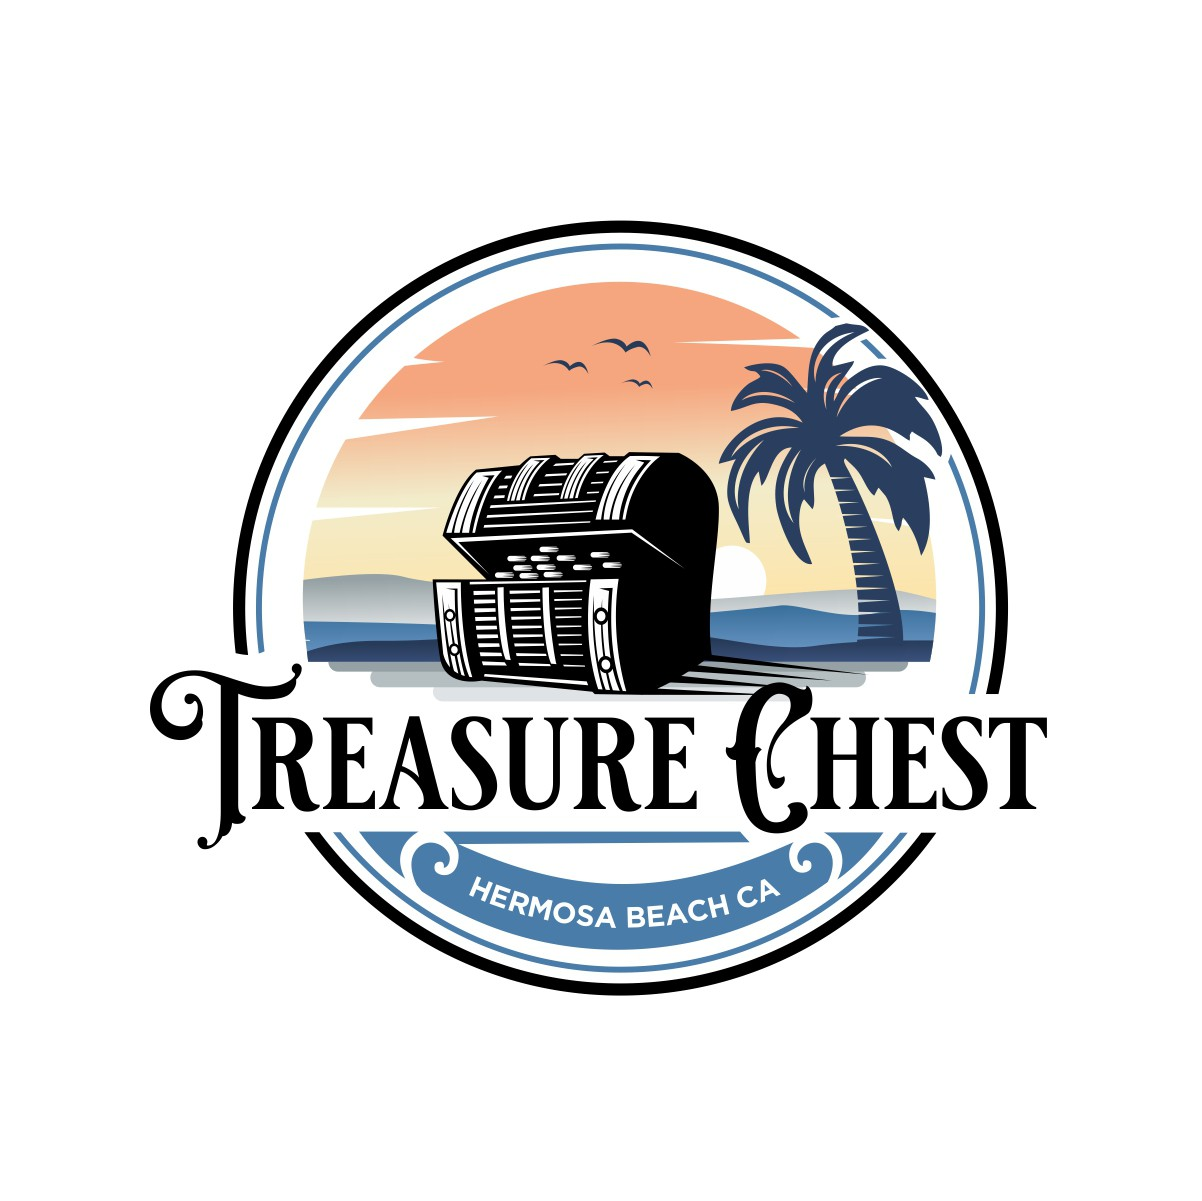 T-shirt Gift shop Novelty store on the beach needs a logo. Treasure Chest